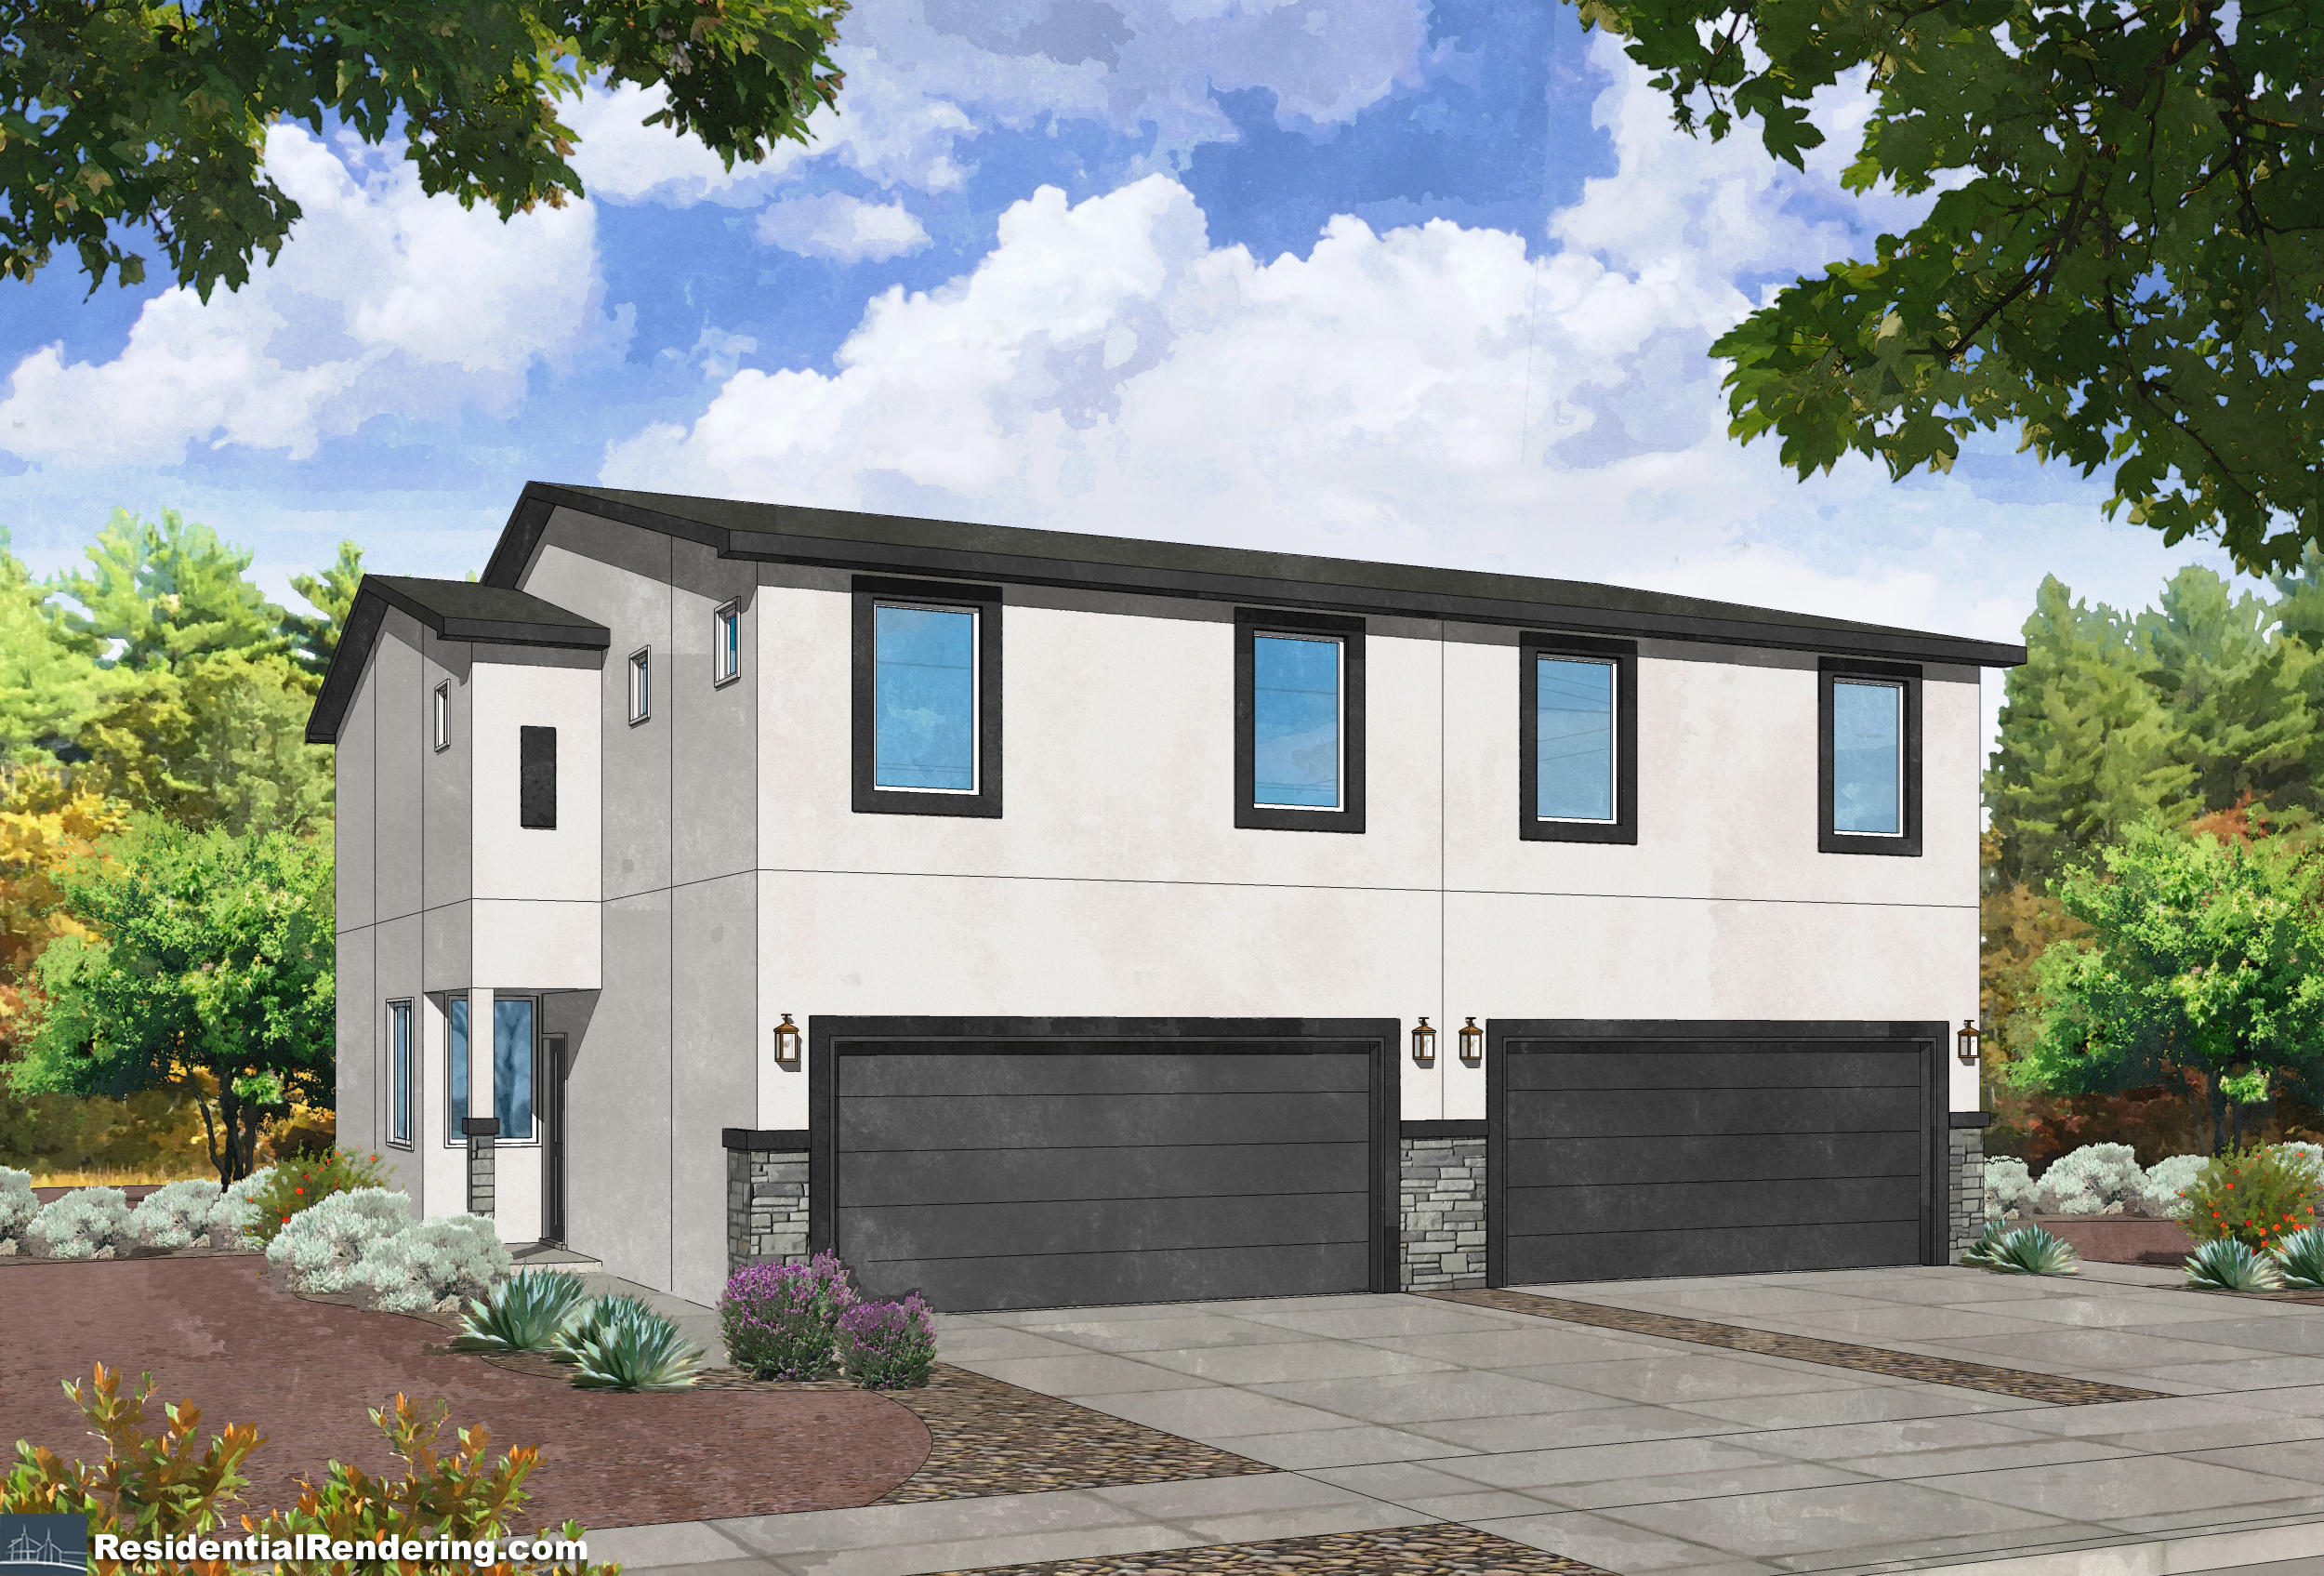 Brand new townhouse at an amazing price! Bright and open kitchen features maple cabinets, GE appliances including 30'' gas range and granite countertops. Large master suite with dual sinks, designer tile shower surrounds, granite vanity sinks and granite backsplash. Energy efficient features include tankless water heater, Carrier 14.0 SEER Refrigerated AC, Low E vinyl windows! Additional upgrades include satin nickel lighting package, Decora electrical switches, raised panel interior doors, Home Team Pest Defense with Taexx System, Front yard landscaping!